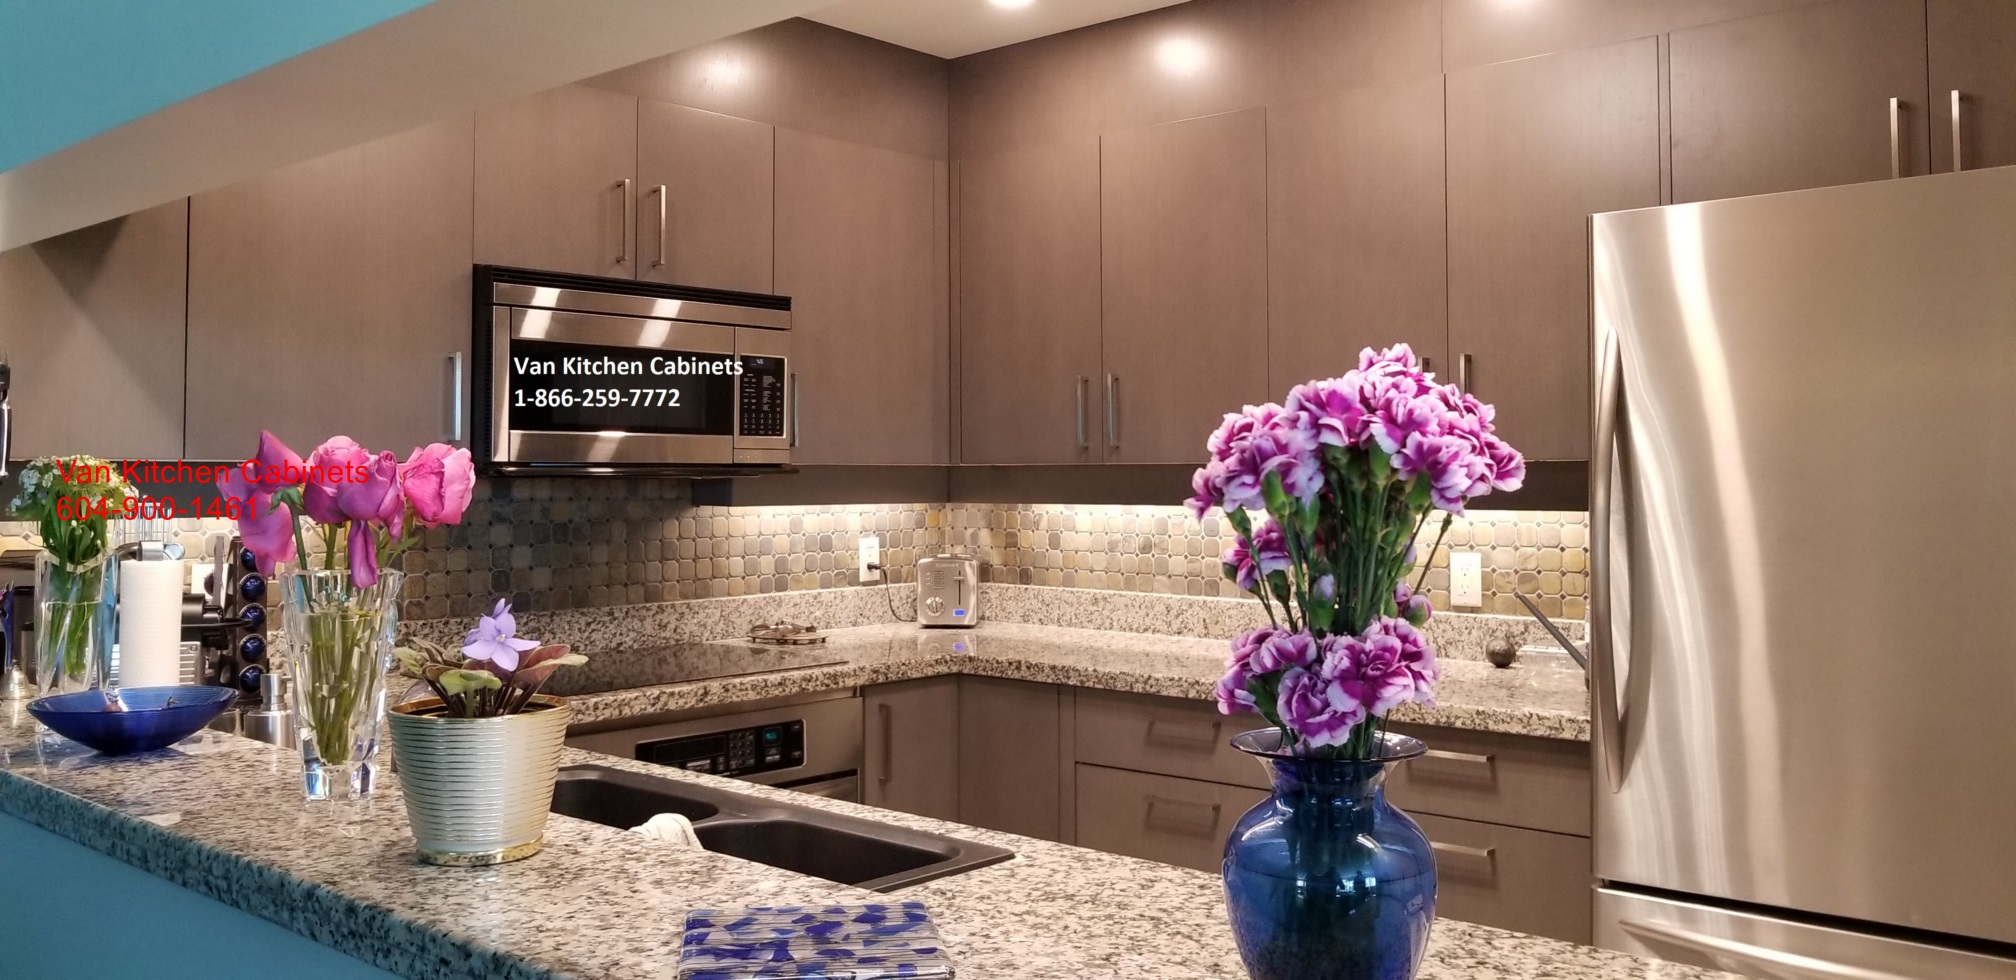 Kitchen cabinet Veneer Door Styles